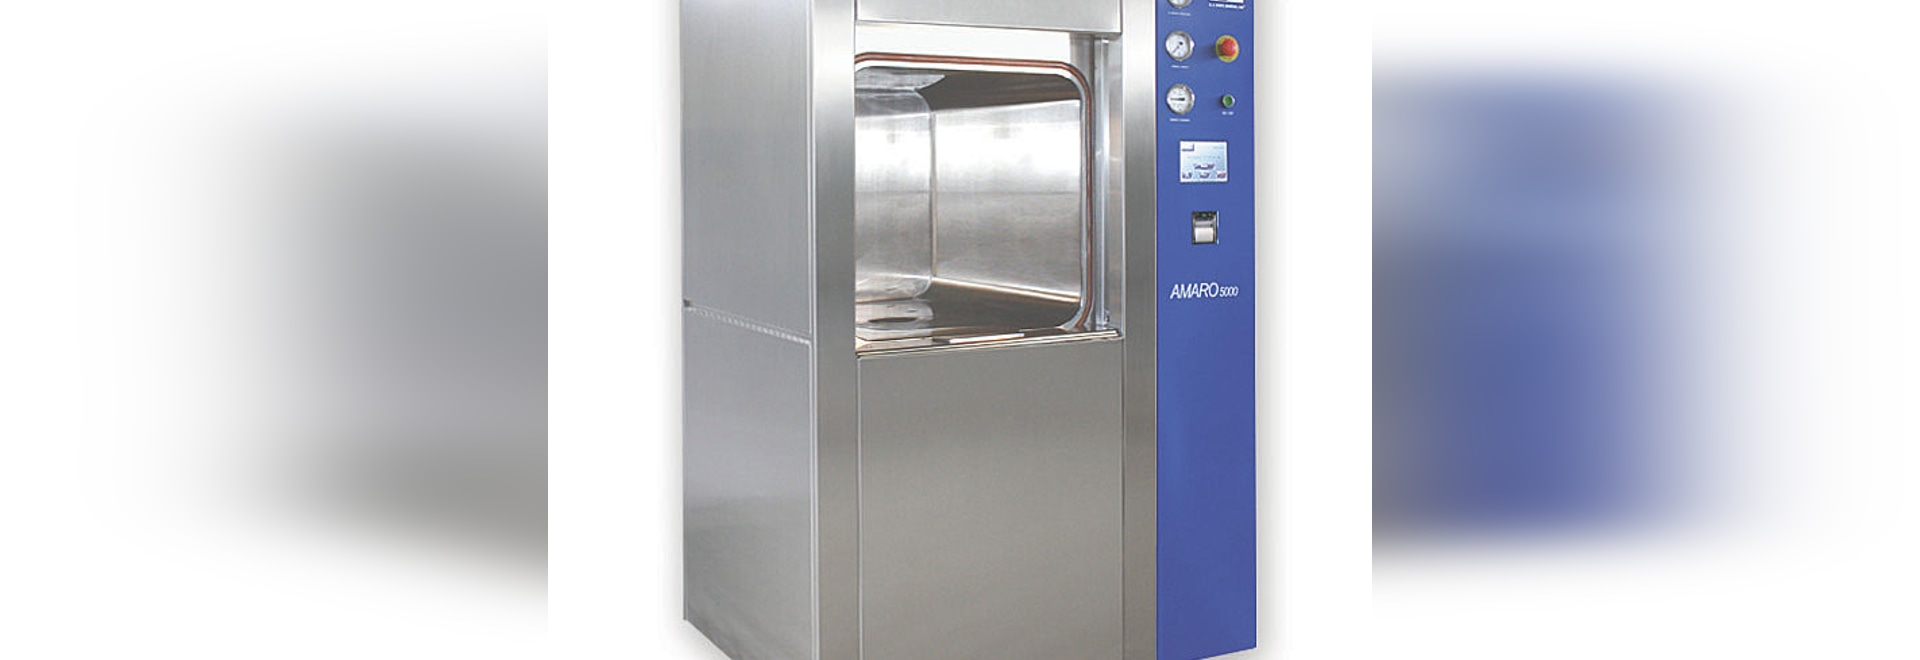 Amaro 5000 Steam Sterilizers, an efficient solution for your CSSD Department or Laboratory Institute